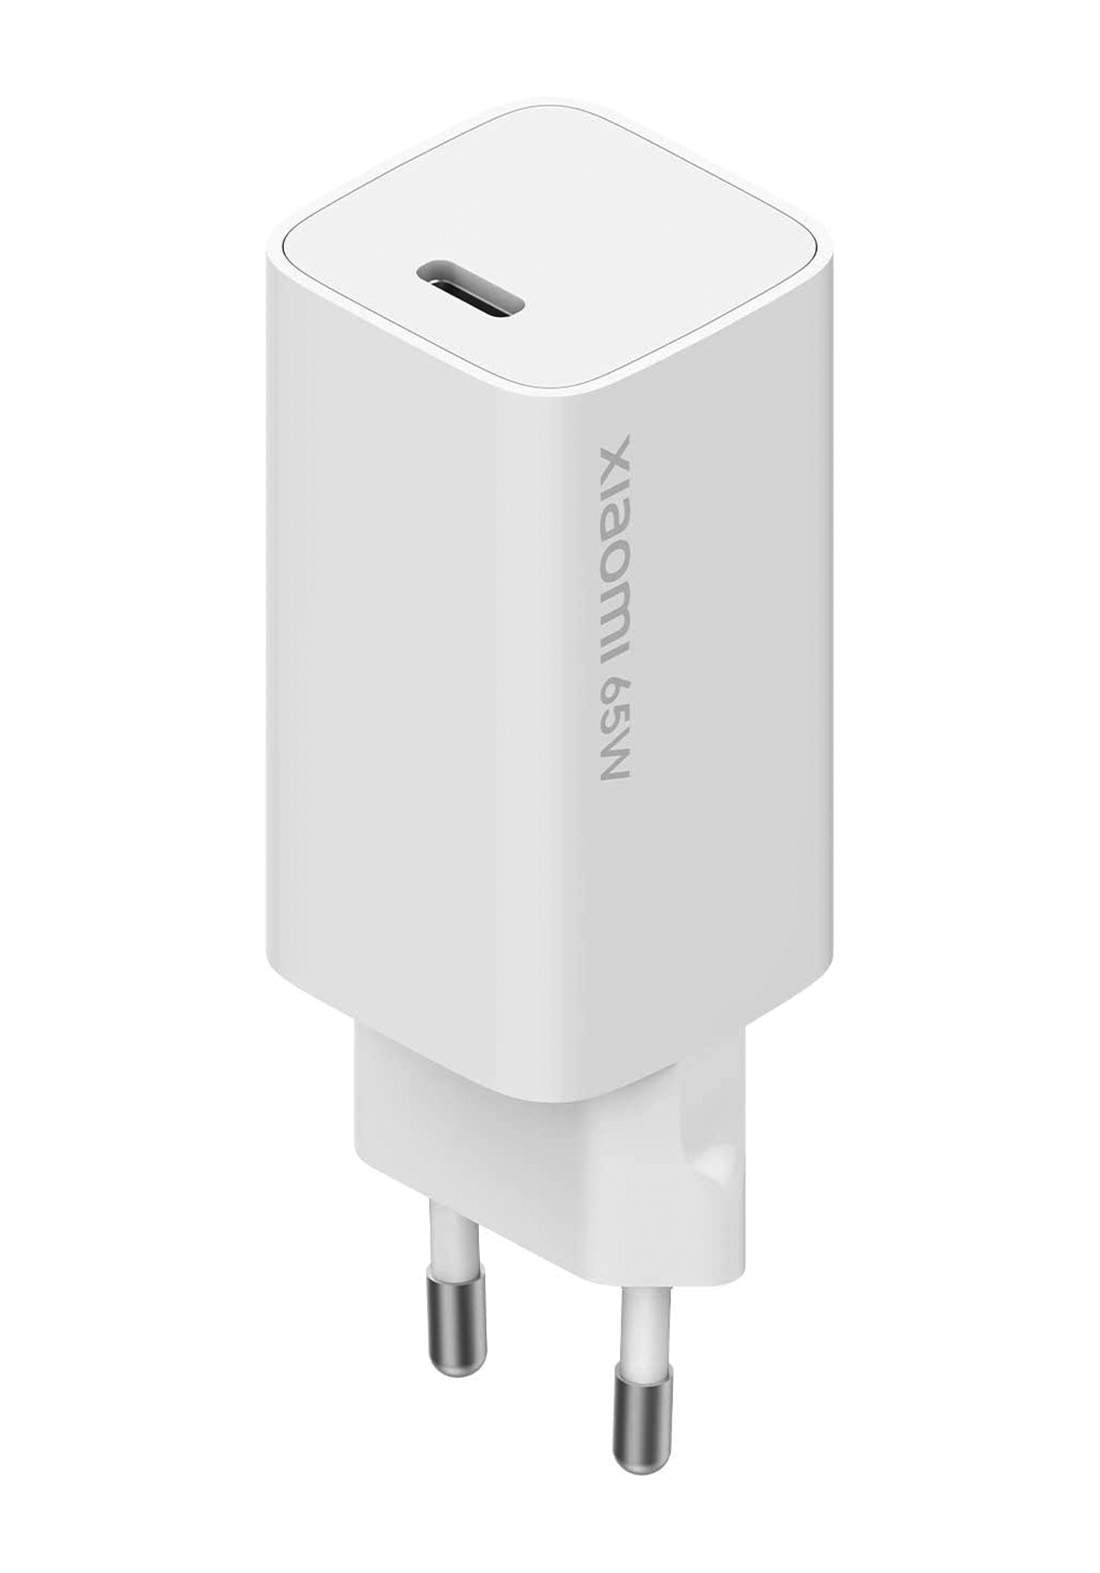 Xiaomi Mi 65W Fast Charger with GaN Tech - White شاحن